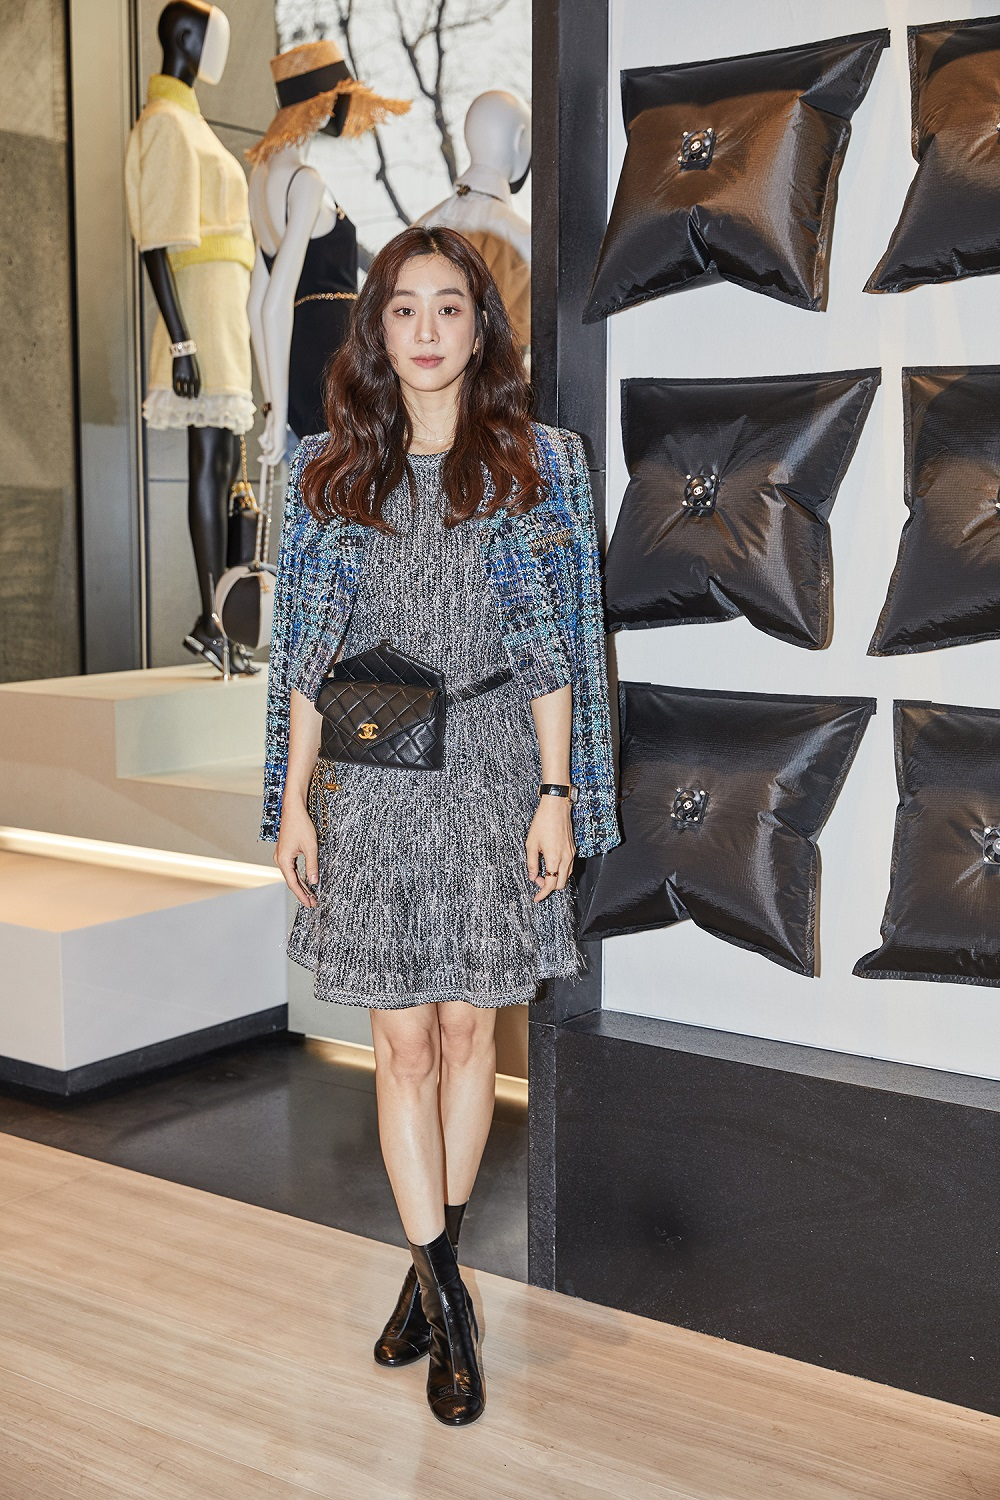 Ryeo-Won Jung wore an iridescent grey tweed dress (look 58), a blue tweed jacket (look 29) from the Spring-Summer 2019 Act 1 Ready-to-Wear collection, CHANEL bag, accessories and shoes. She also wore